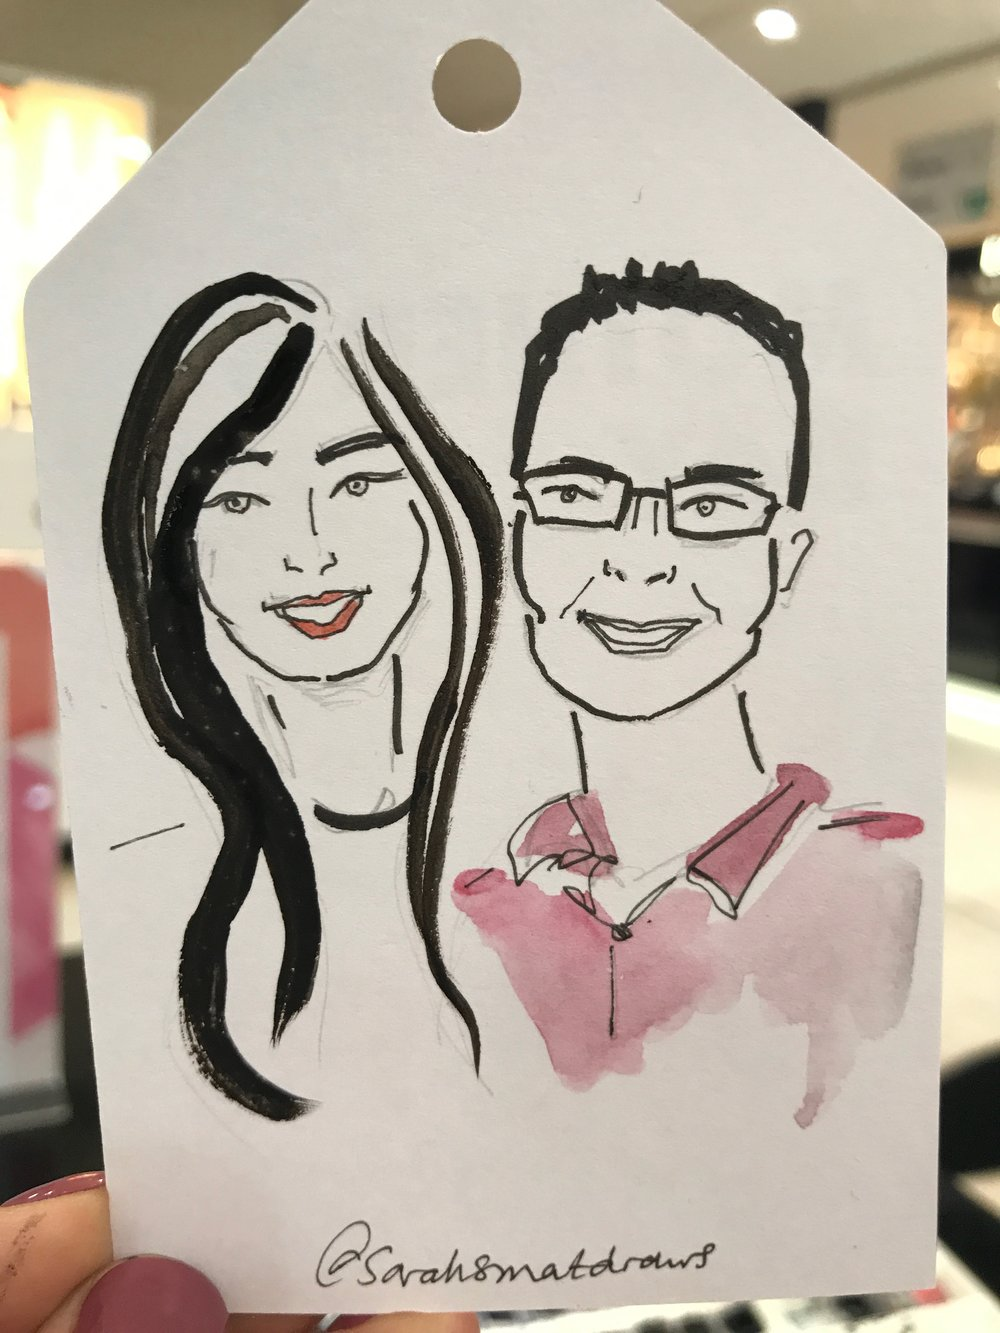 Selfridges Live Drawing Event, Mother's Day with Sarah Smart